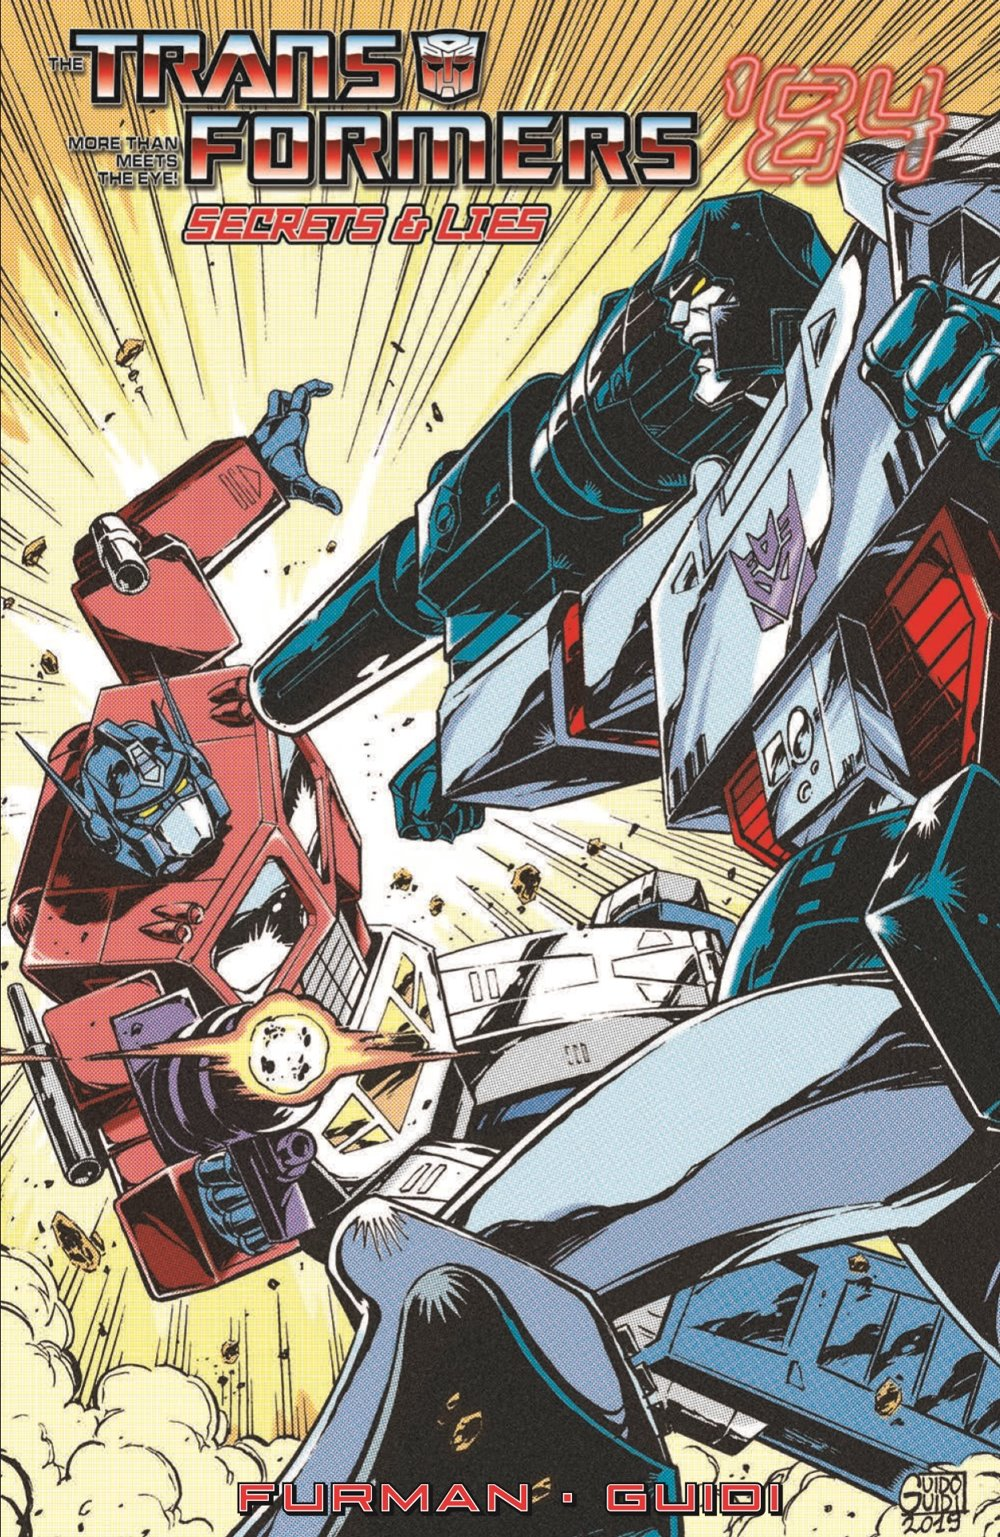 TF84_Secrets_Lies_TPB_pr-1 ComicList Previews: TRANSFORMERS '84 SECRETS AND LIES TP